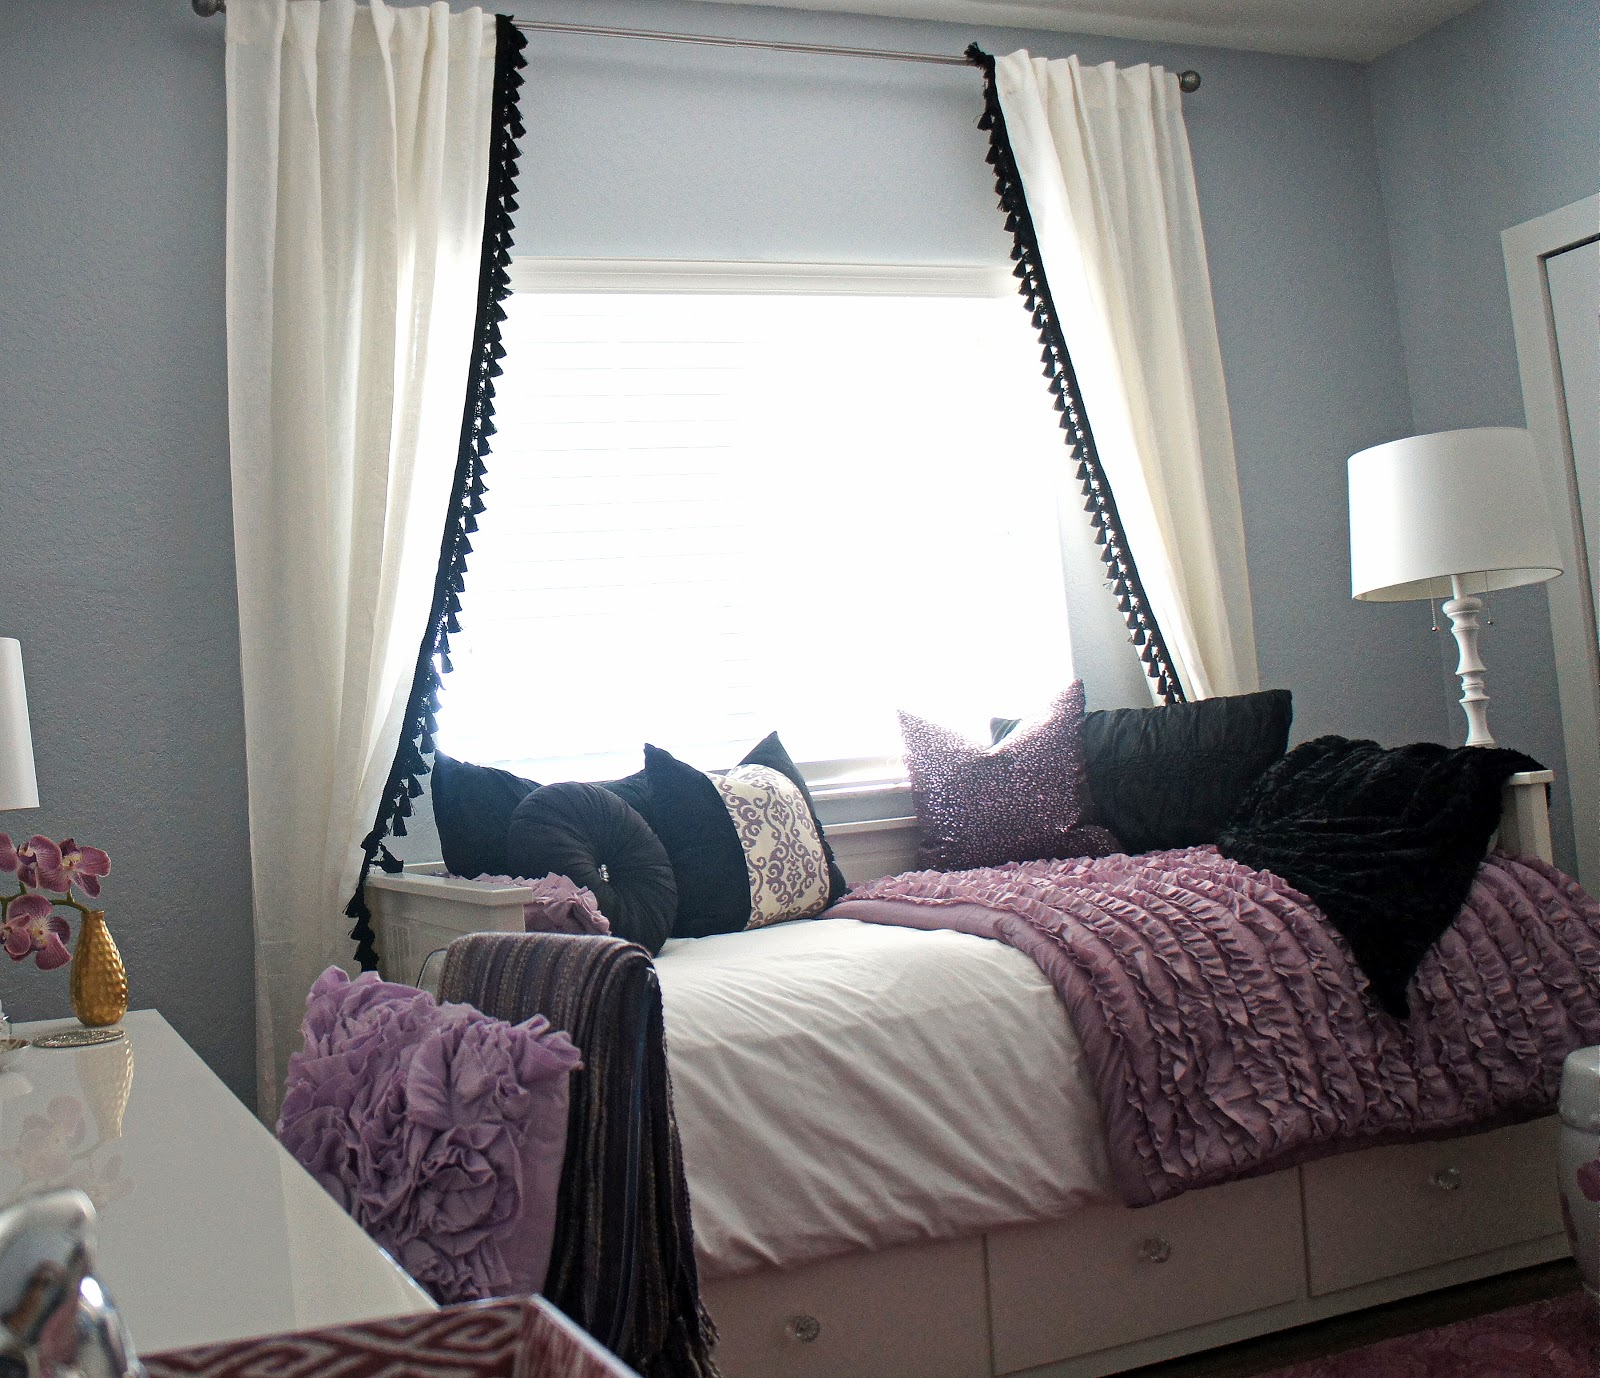 Here Is Isabellau0027s Bed And Window After The New DIY Tassel Curtains Were  Hung. ***LOVE***